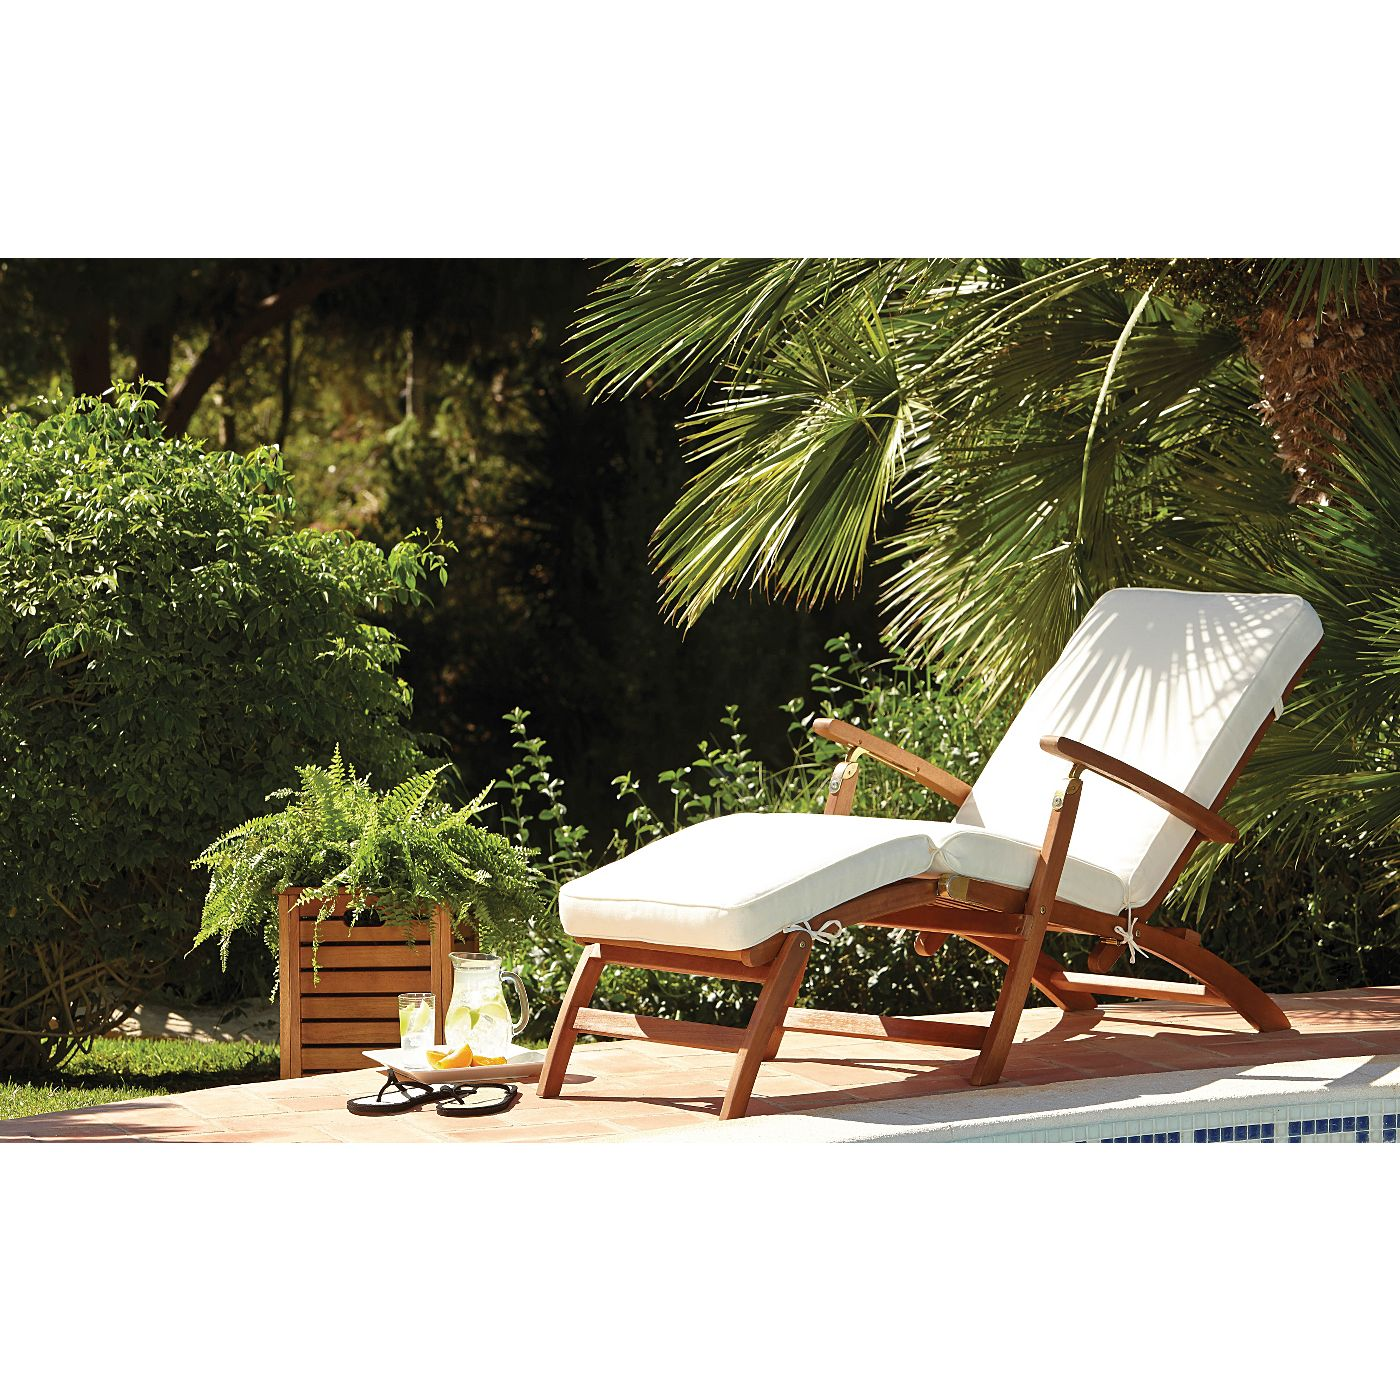 Sedona Steamer Lounger  Garden Furniture  ASDA direct  Garden